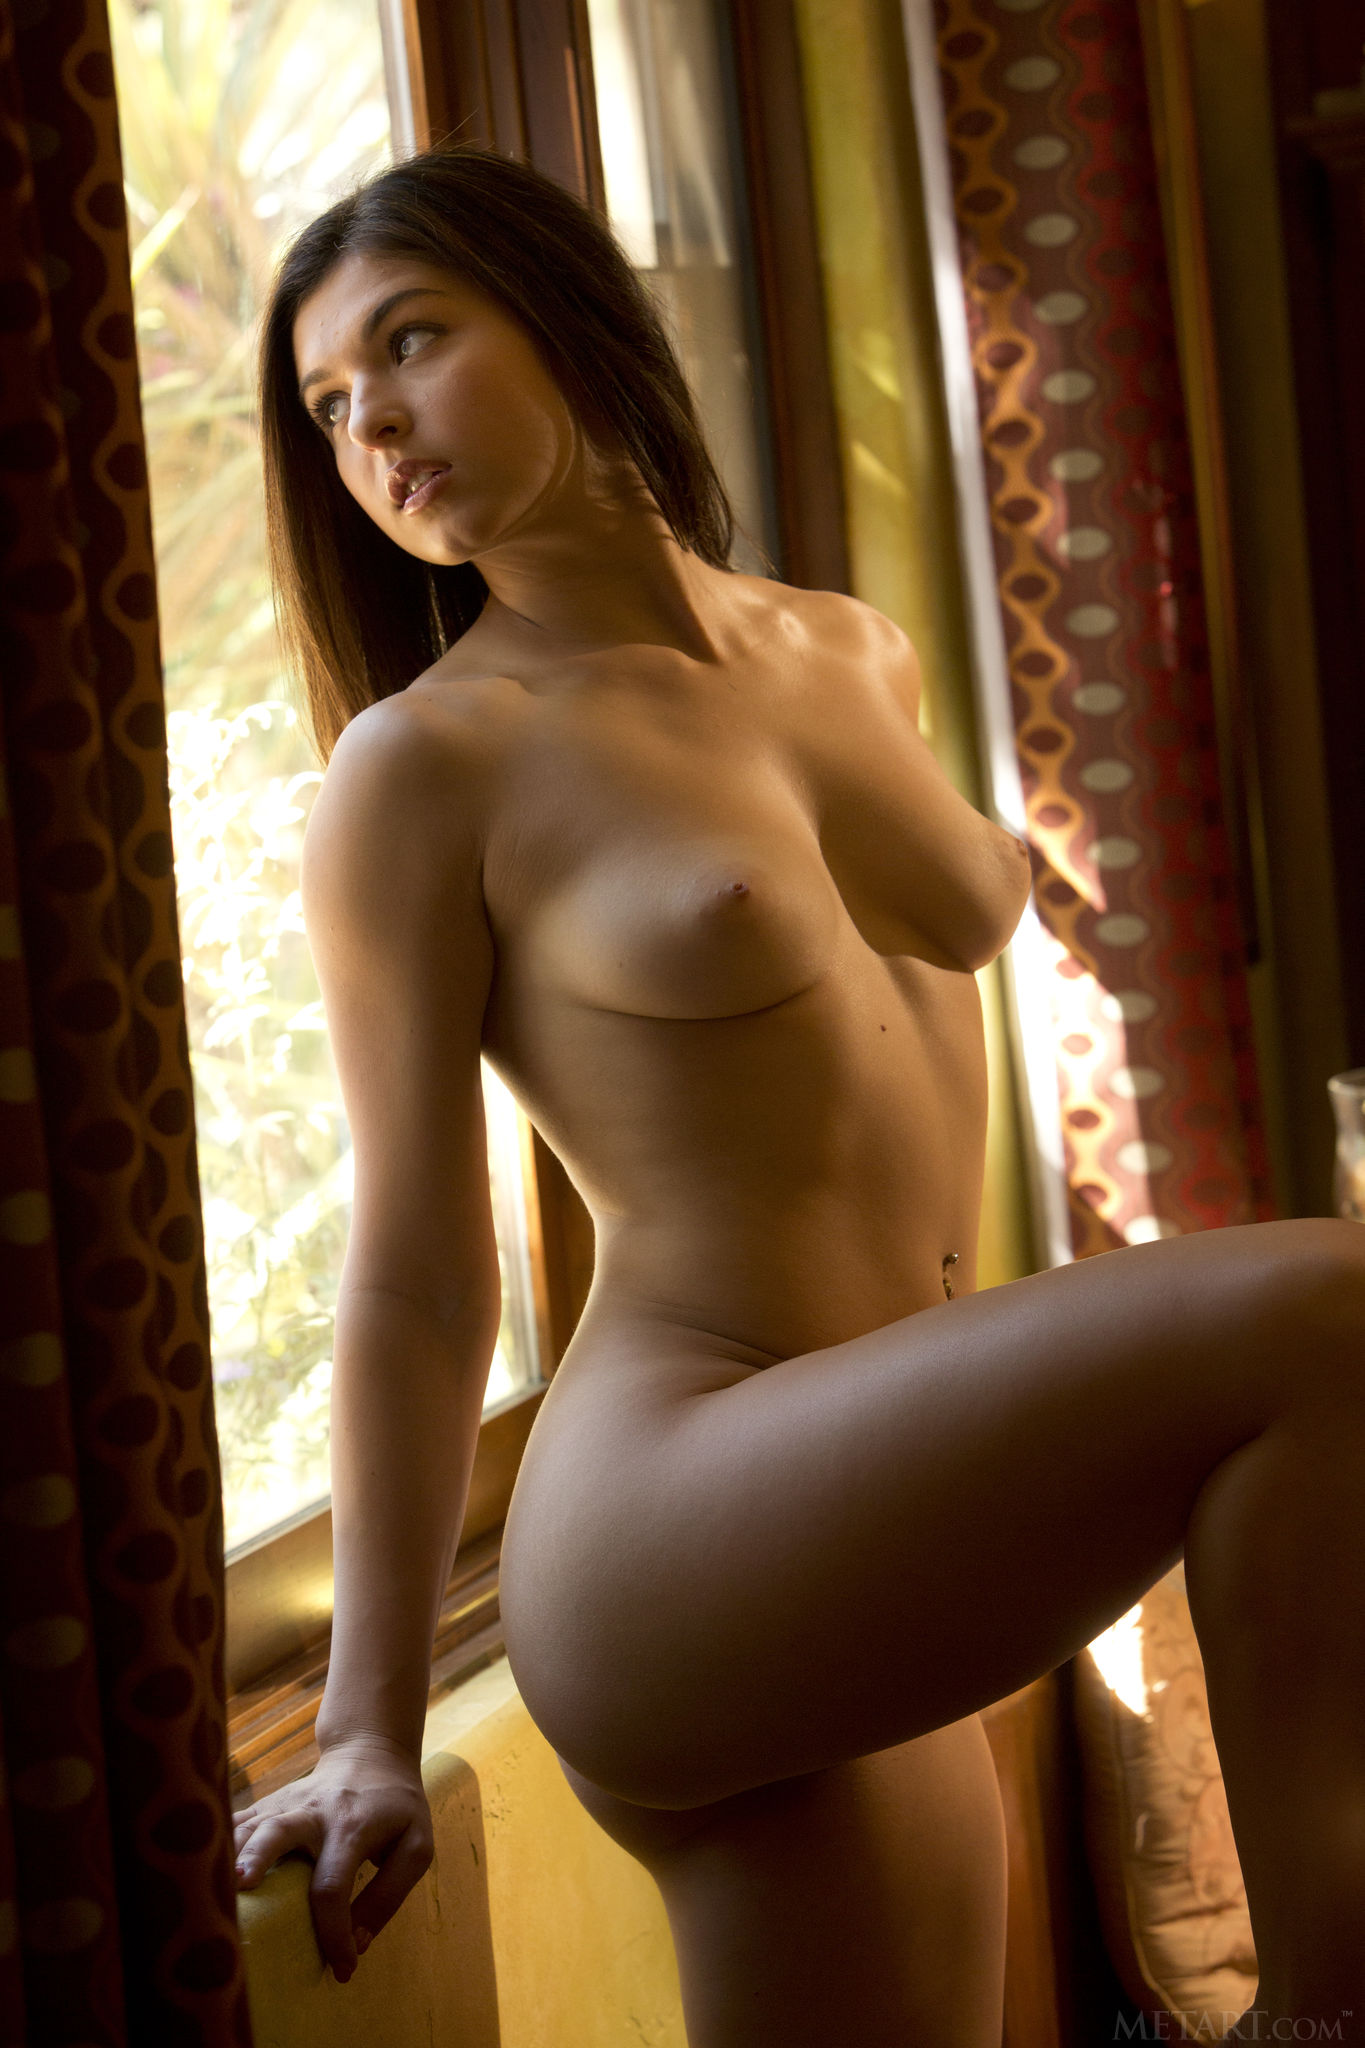 busty-shaved-brunette-leah-gotti-with-plump-pussy-from-met-art-11.jpg